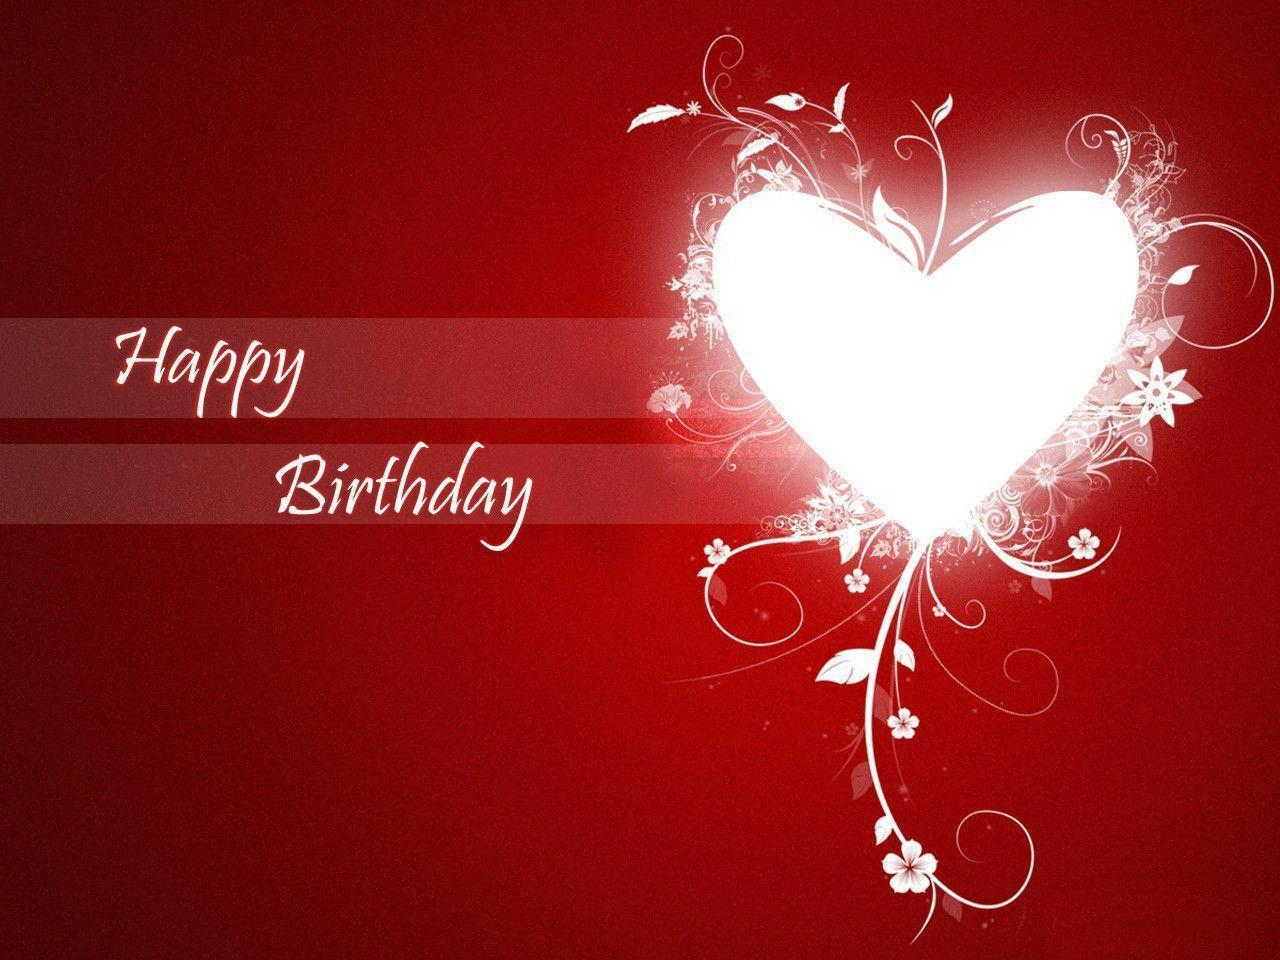 Lover Wallpaper Photo : Happy Birthday Love Wallpapers - Wallpaper cave